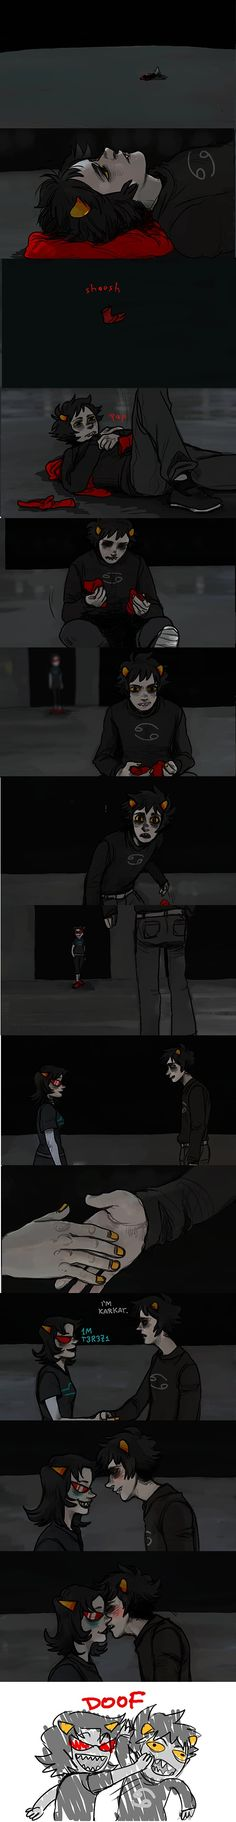 Tags: Anime, Almost Kiss, Homestuck, Terezi Pyrope, Karkat Vantas, Red Footwear